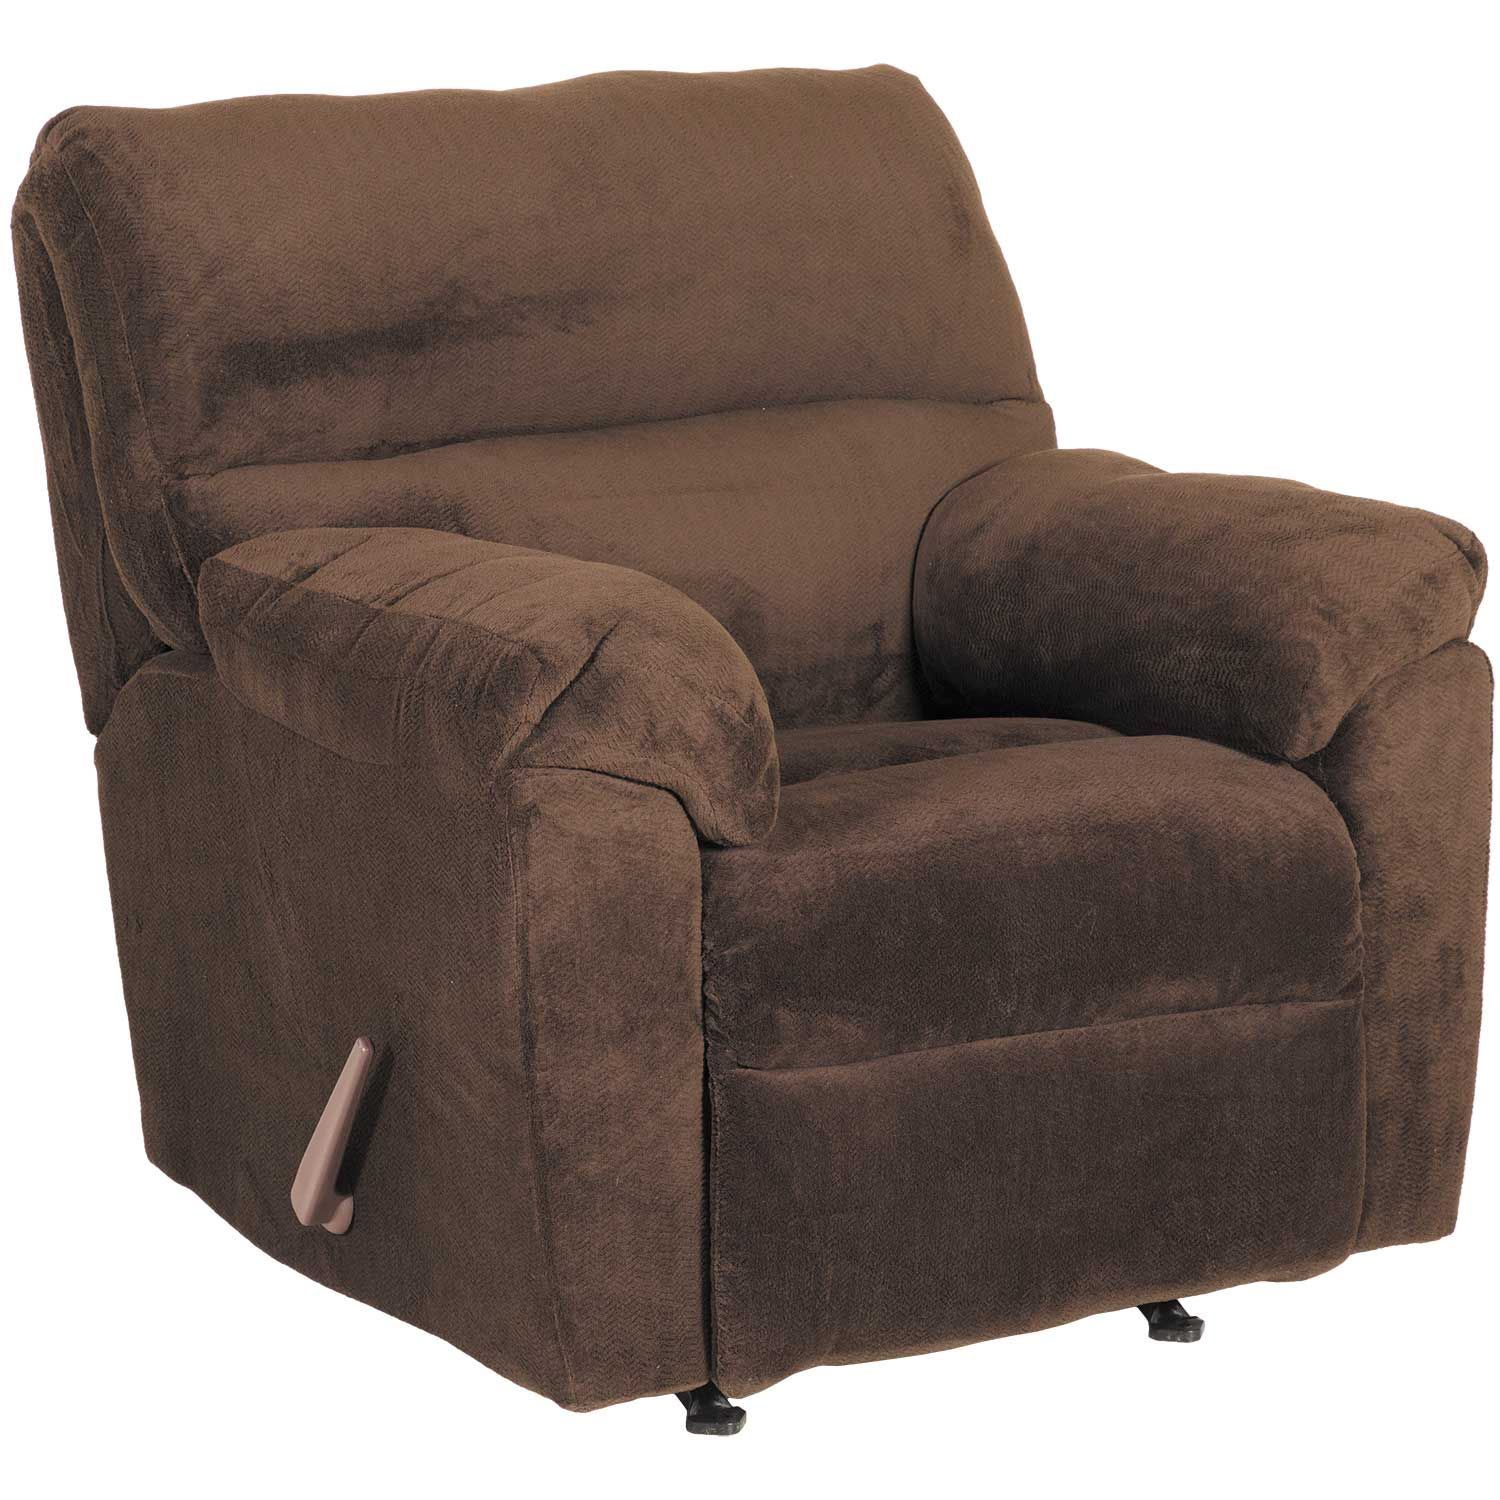 Picture of Chevron Chocolate Rocker Recliner